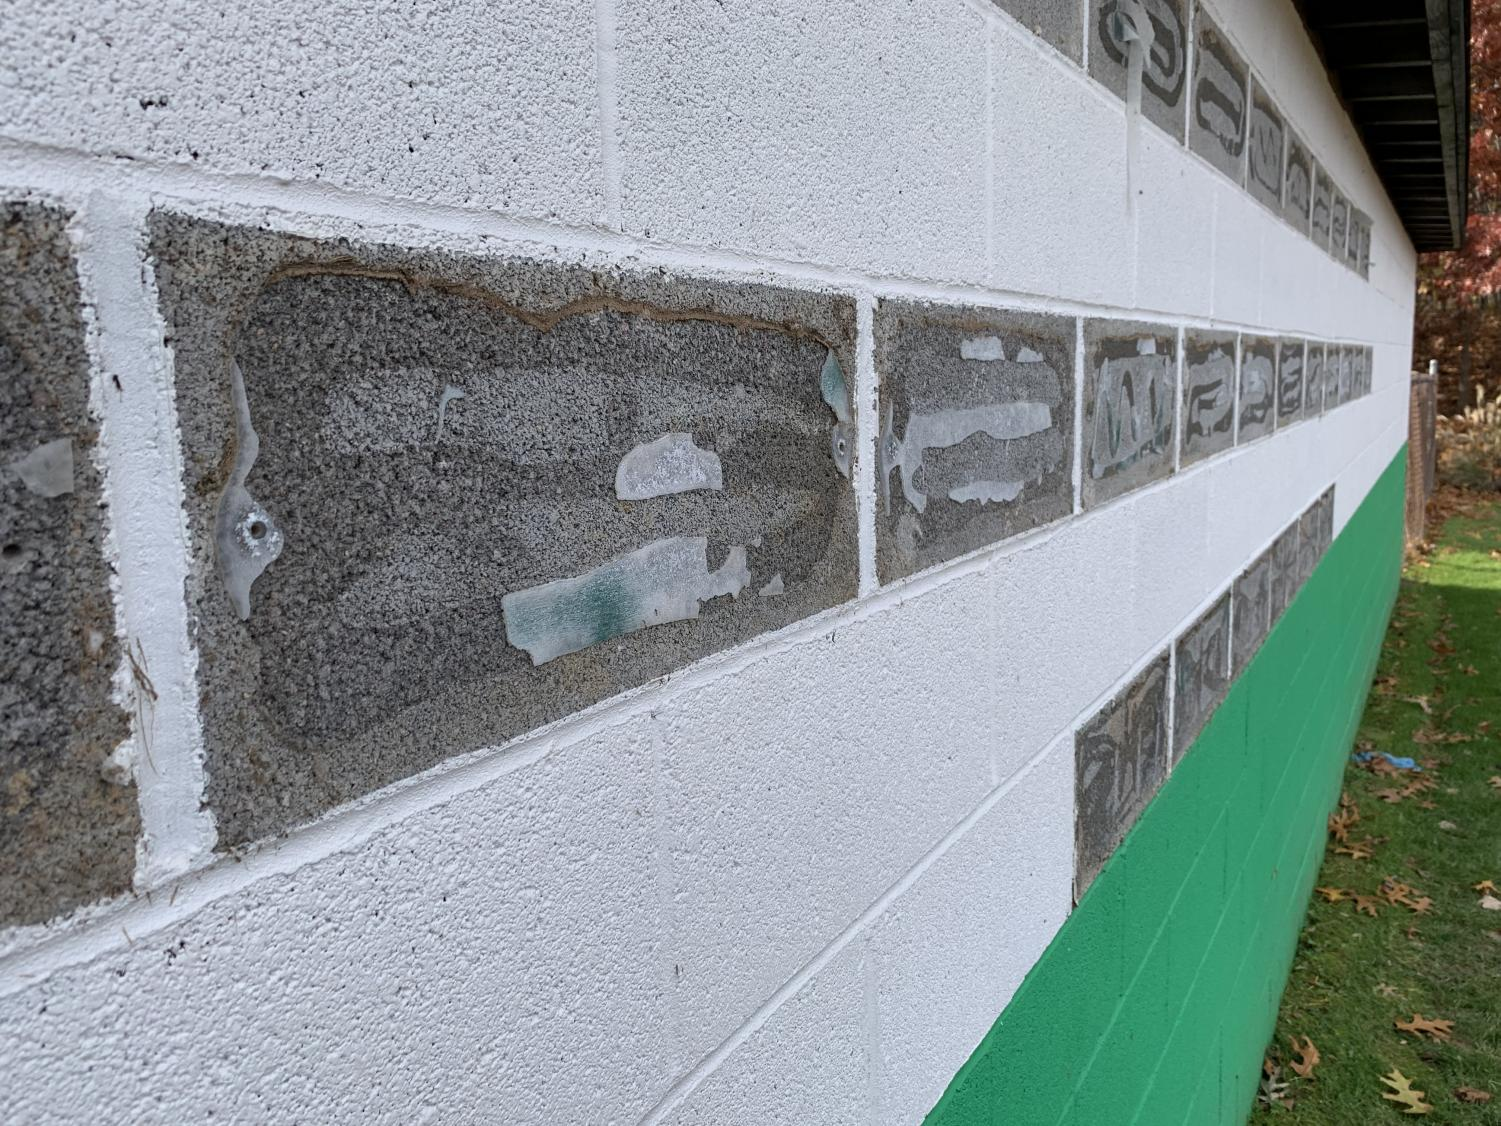 The plaques behind the third base baseball dugout were removed Wednesday morning. Pascack Valley Regional High School District Superintendent Erik Gundersen informed the Pascack Valley community in an email.